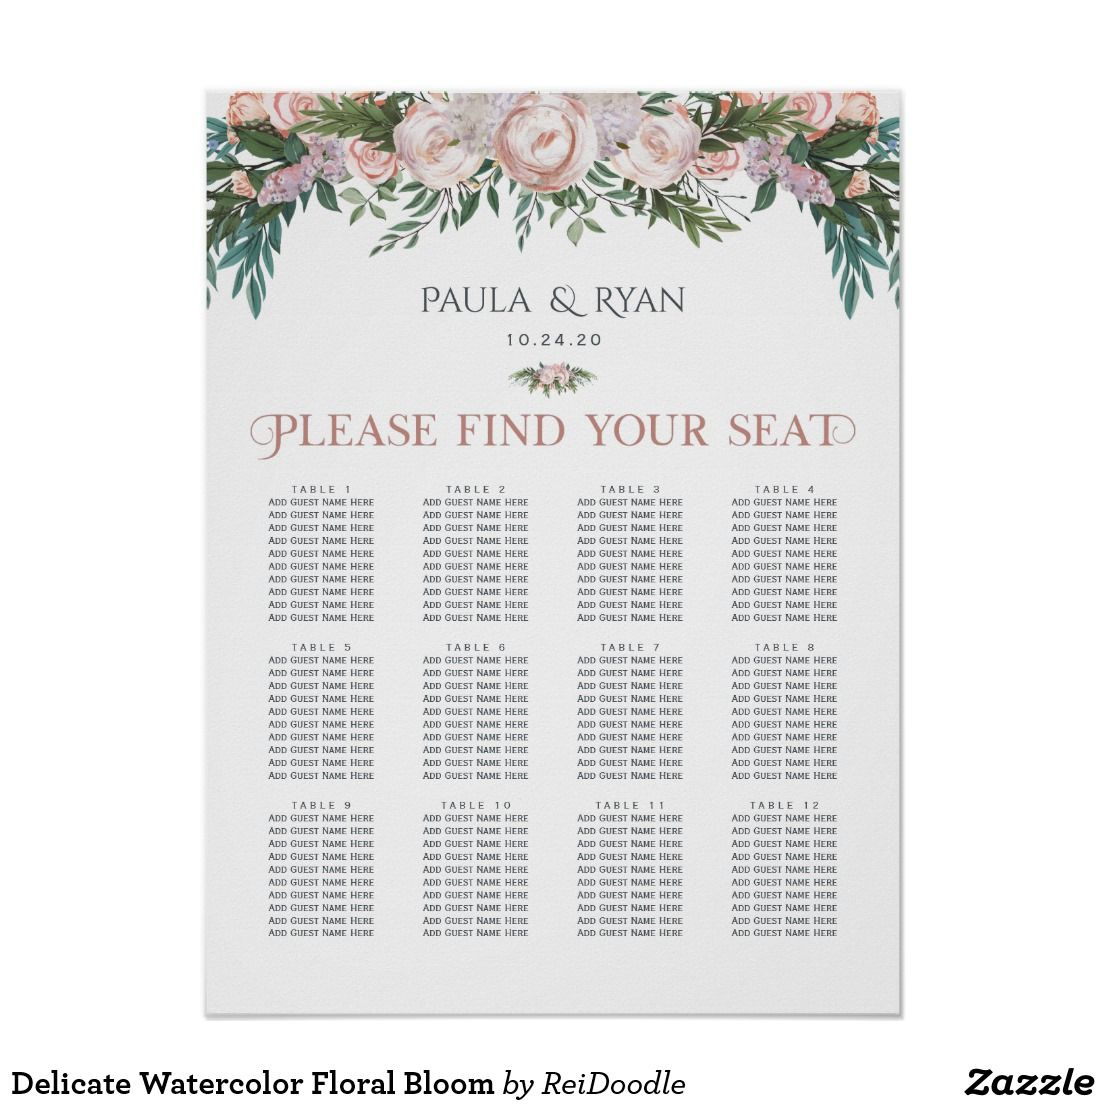 Delicate Watercolor Floral Bloom Poster